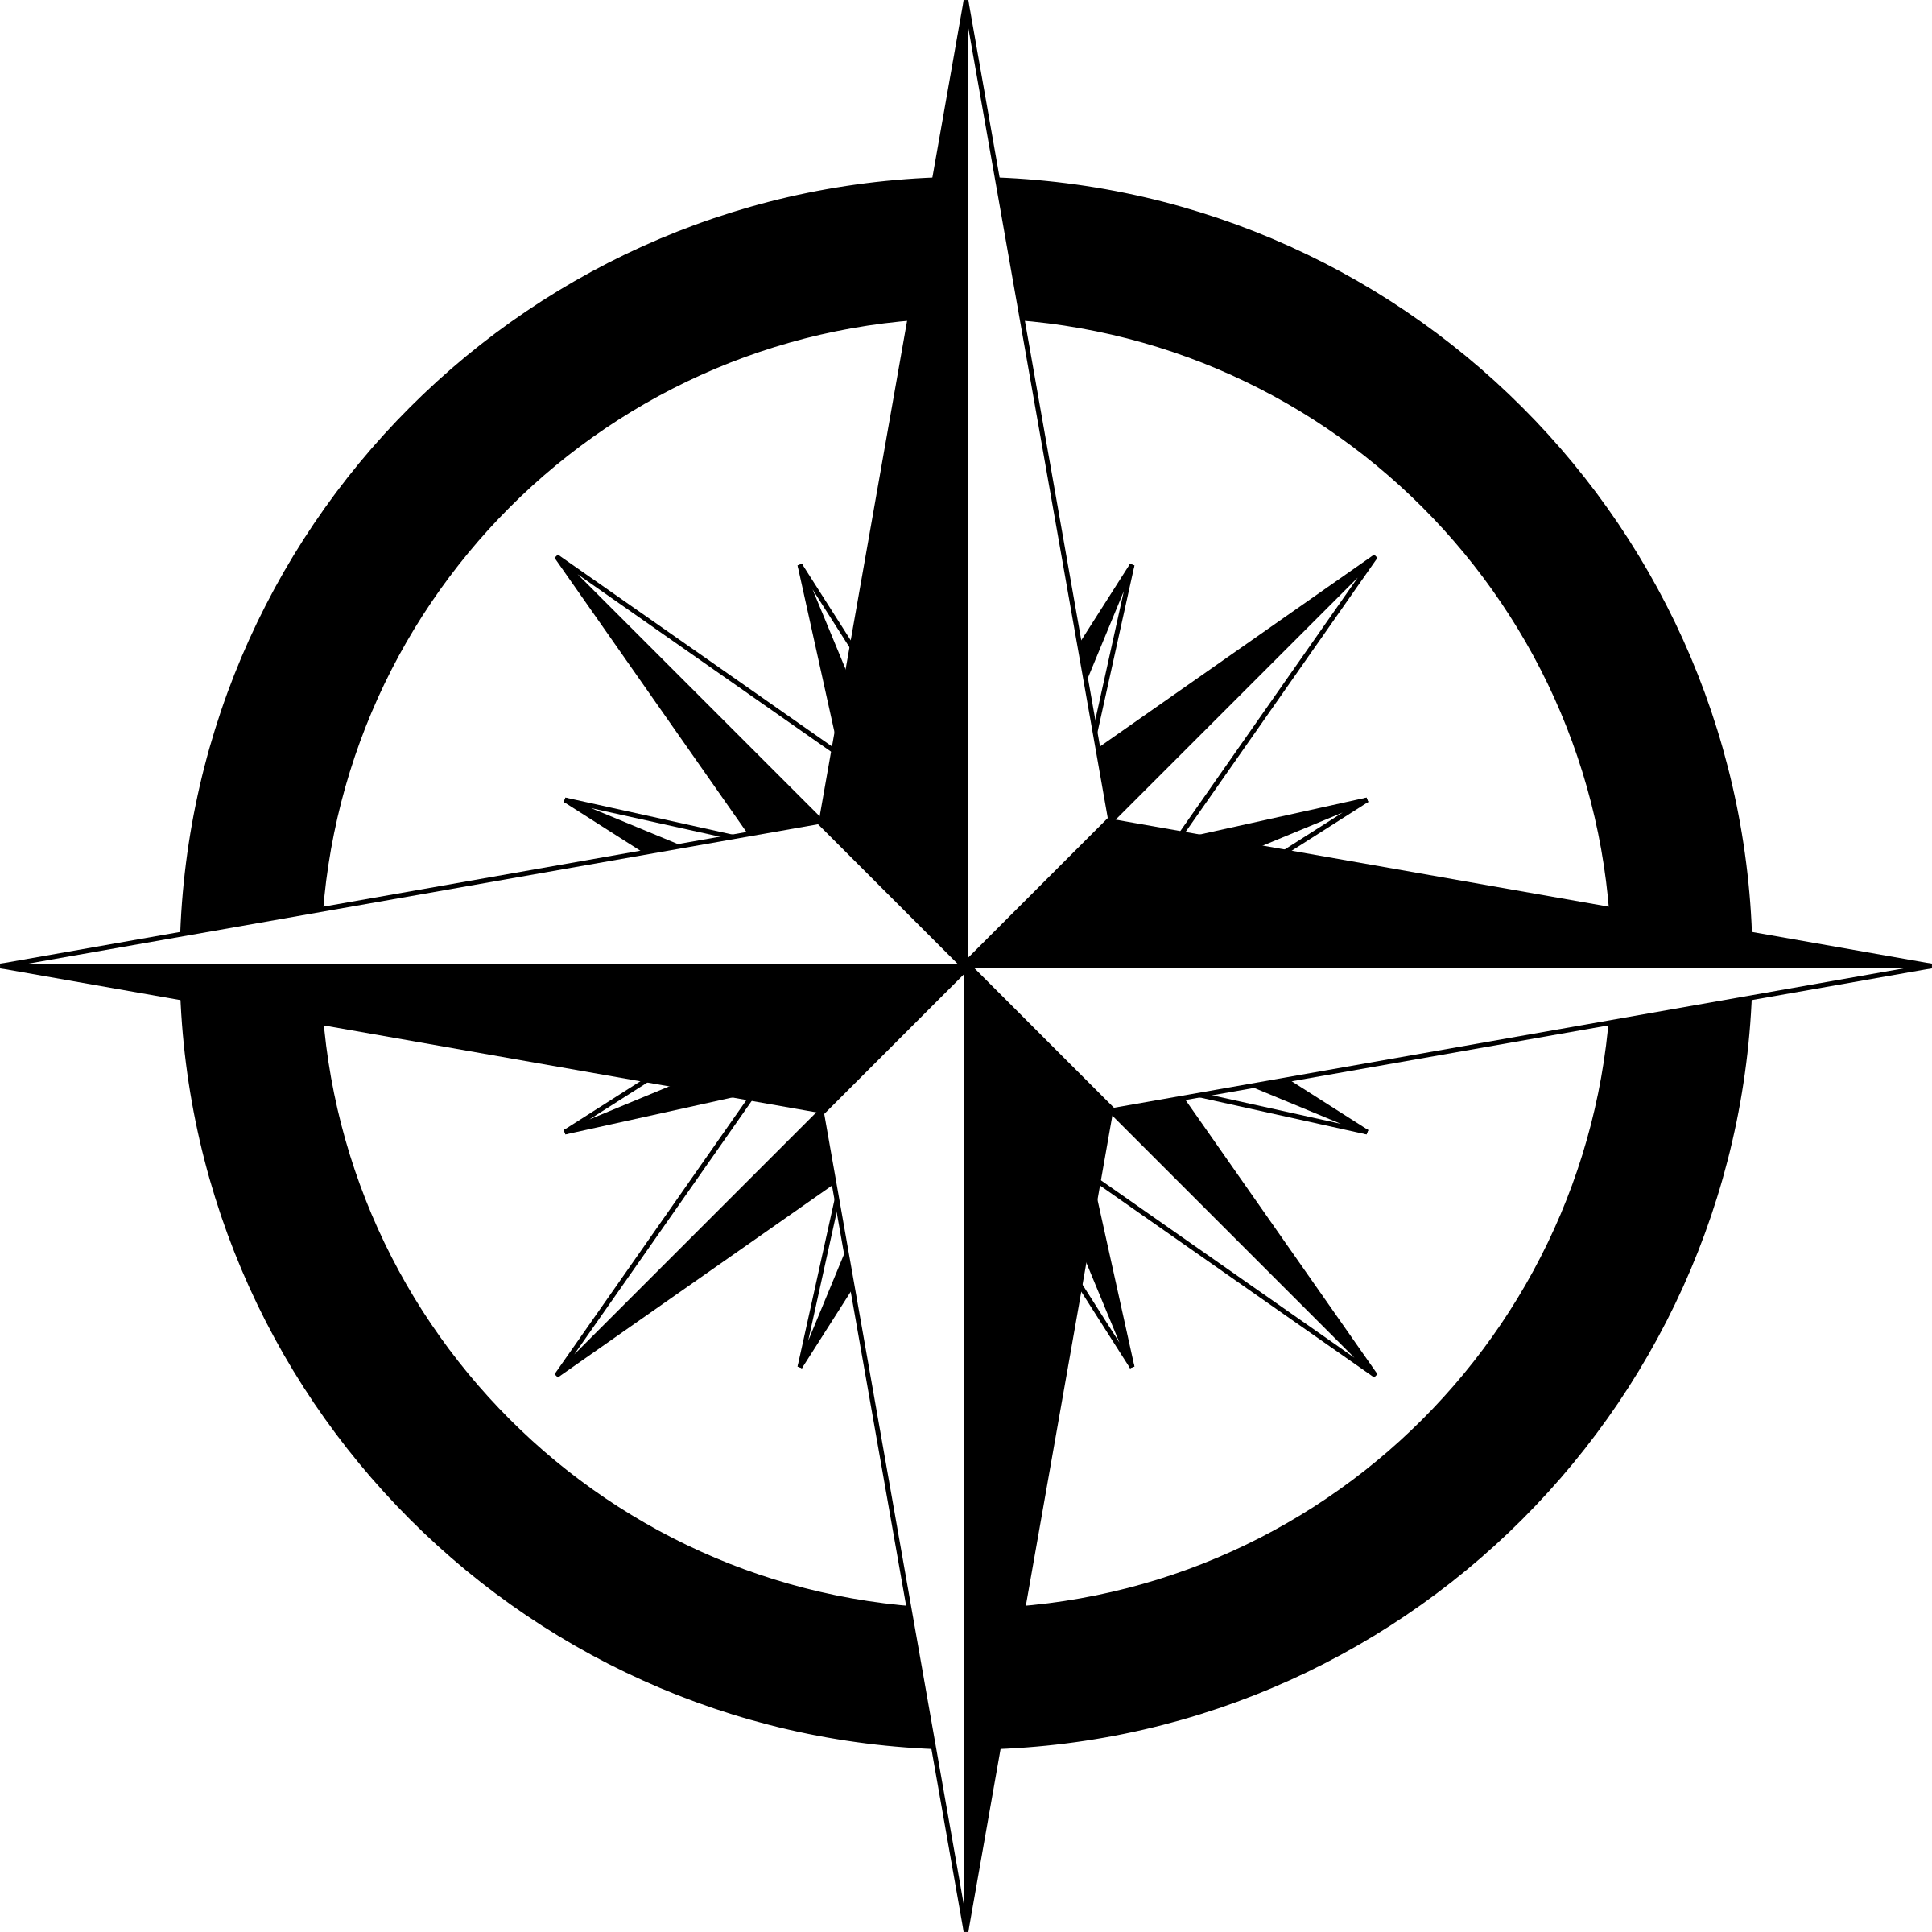 compass rose vector clipart image photo #17134